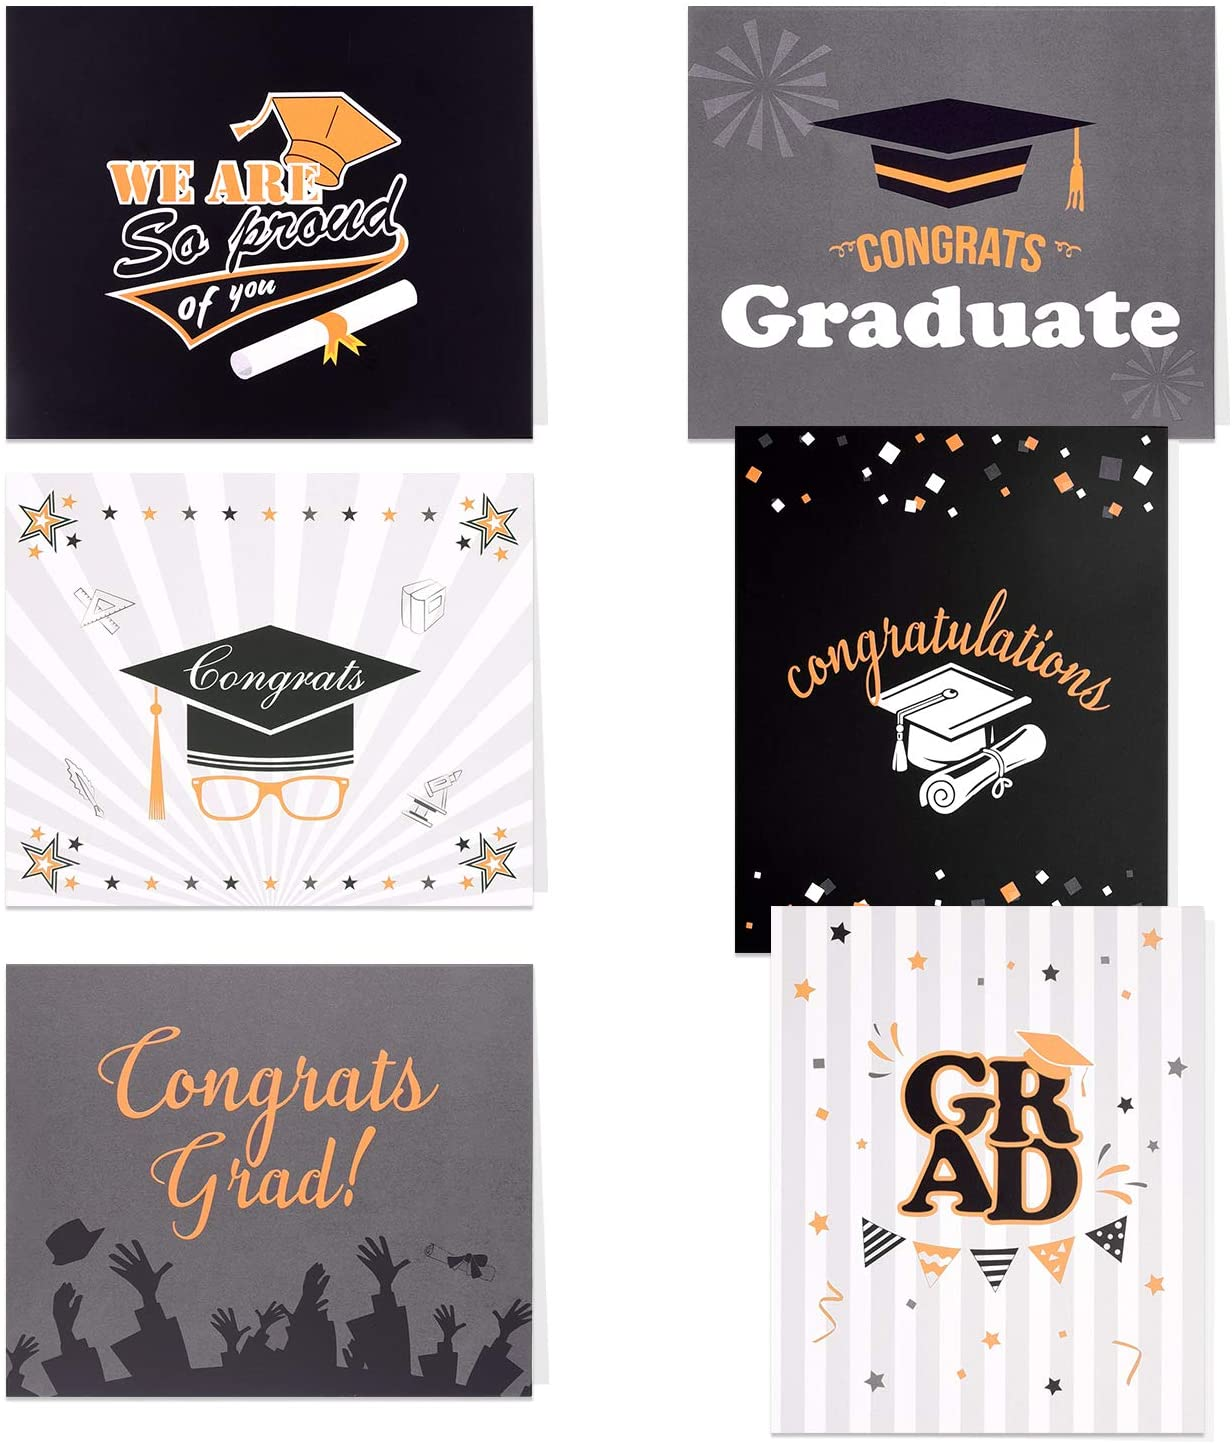 TUPARKA 36 Pack Graduation Cards 2020, Grad Congratulations Cards Bulk,Congrats Greeting Cards Set with 36 Envelopes for Graduation Party Favors 2020,6 Styles,4x4.75 inches